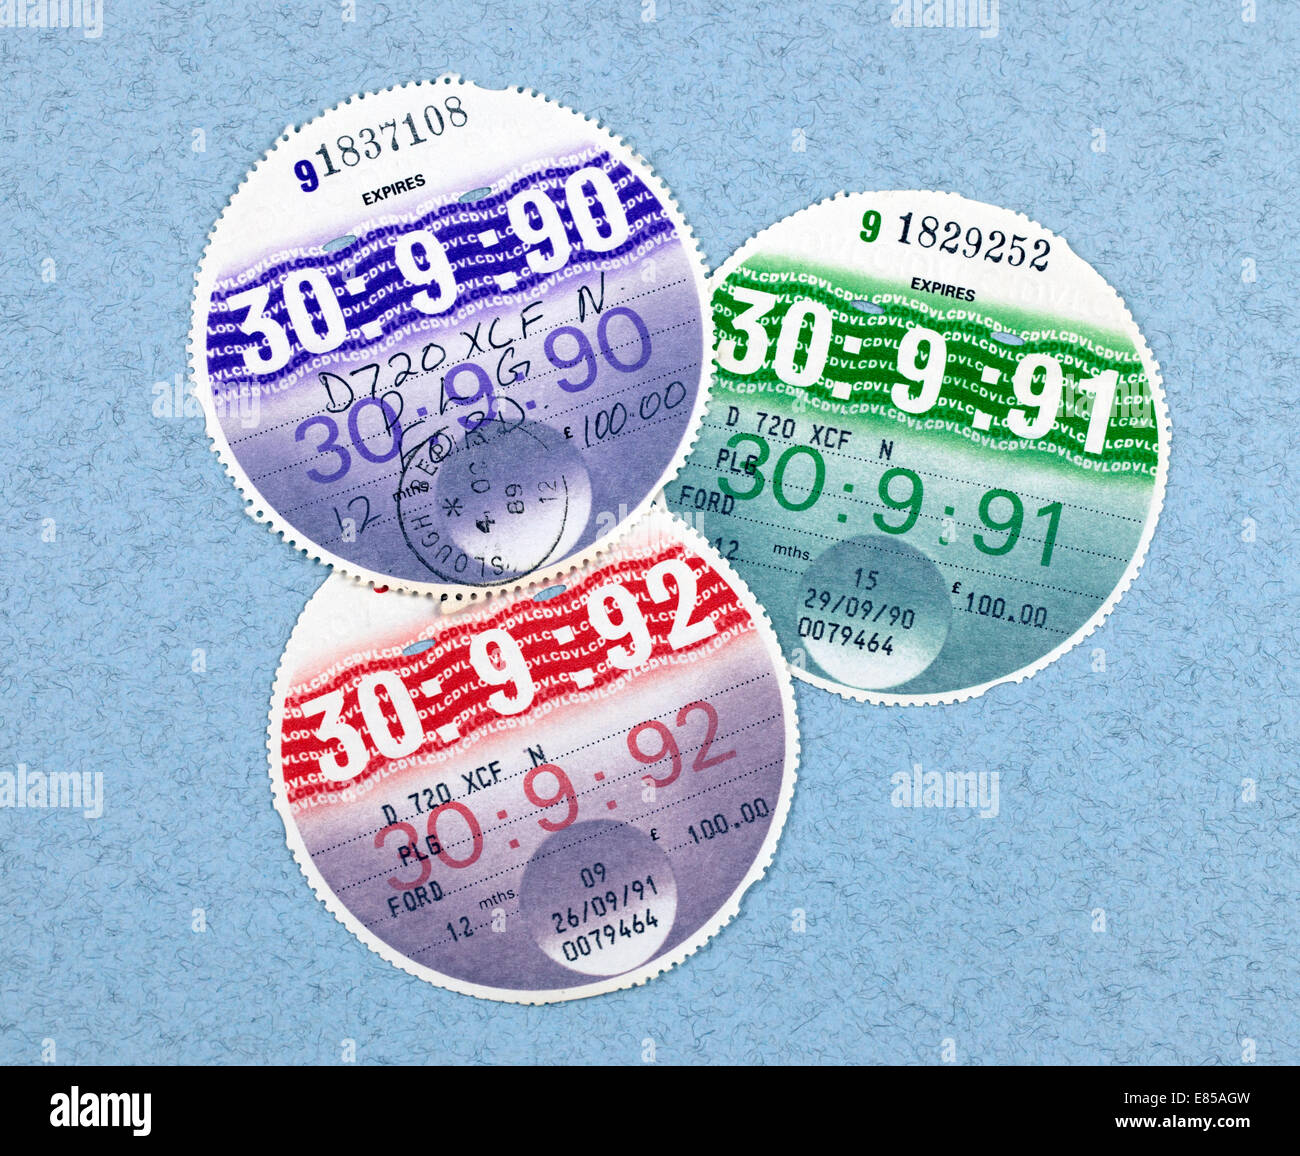 Three old car tax discs from 1990, 1991 and 1992 - Stock Image